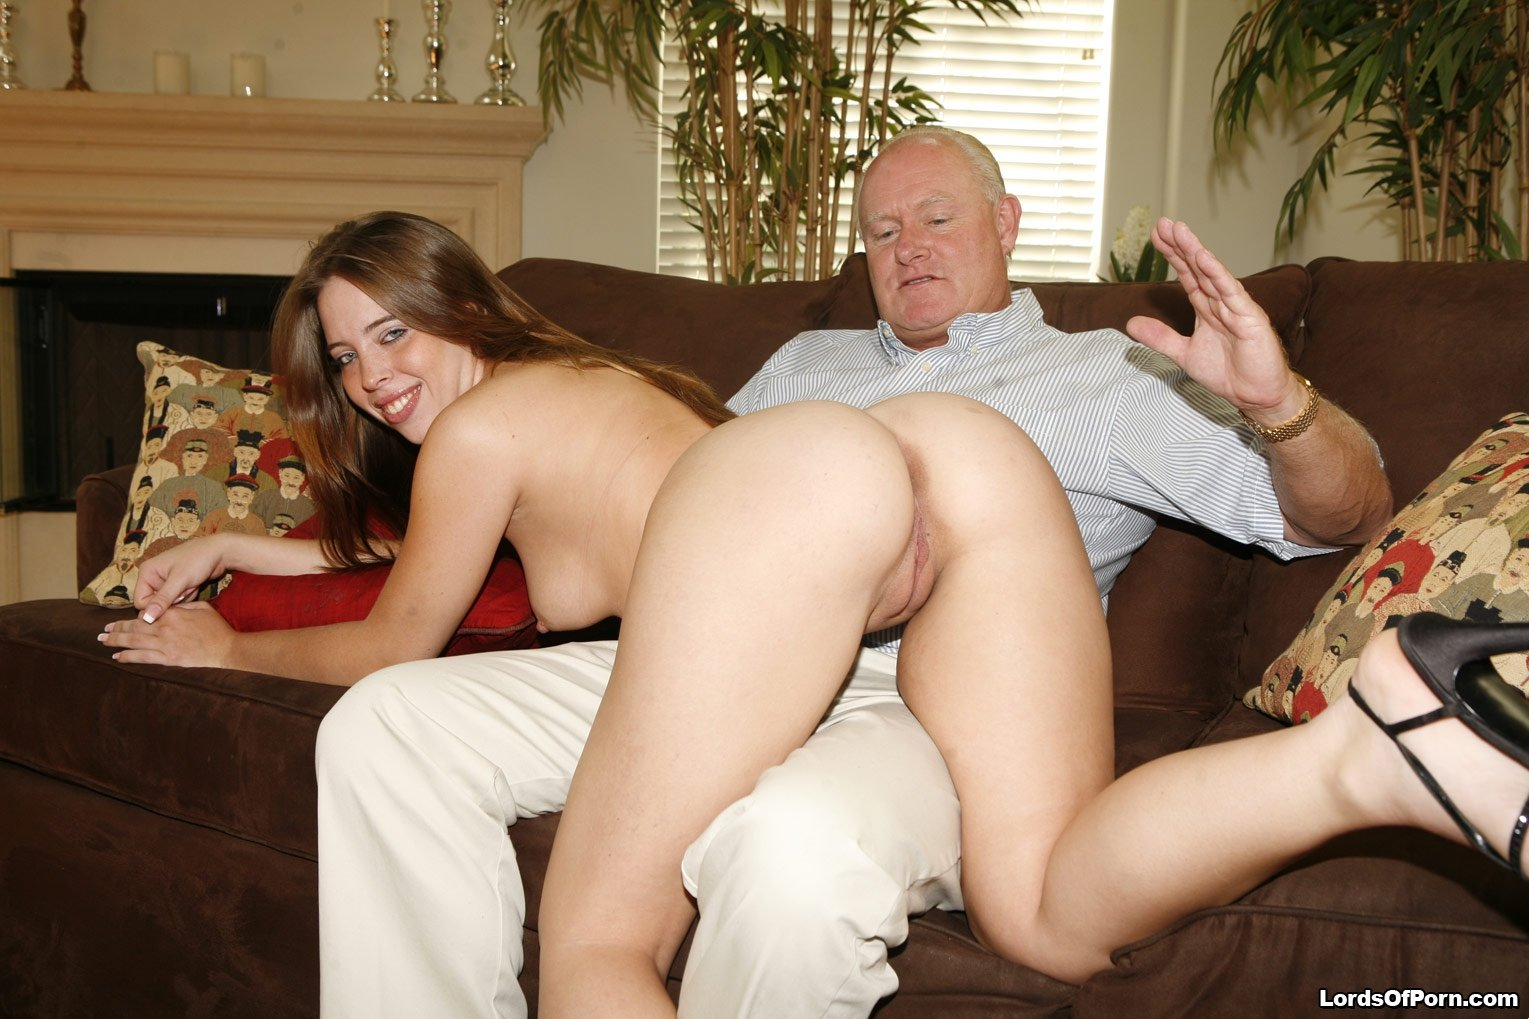 Daughter pussy dad cum movies